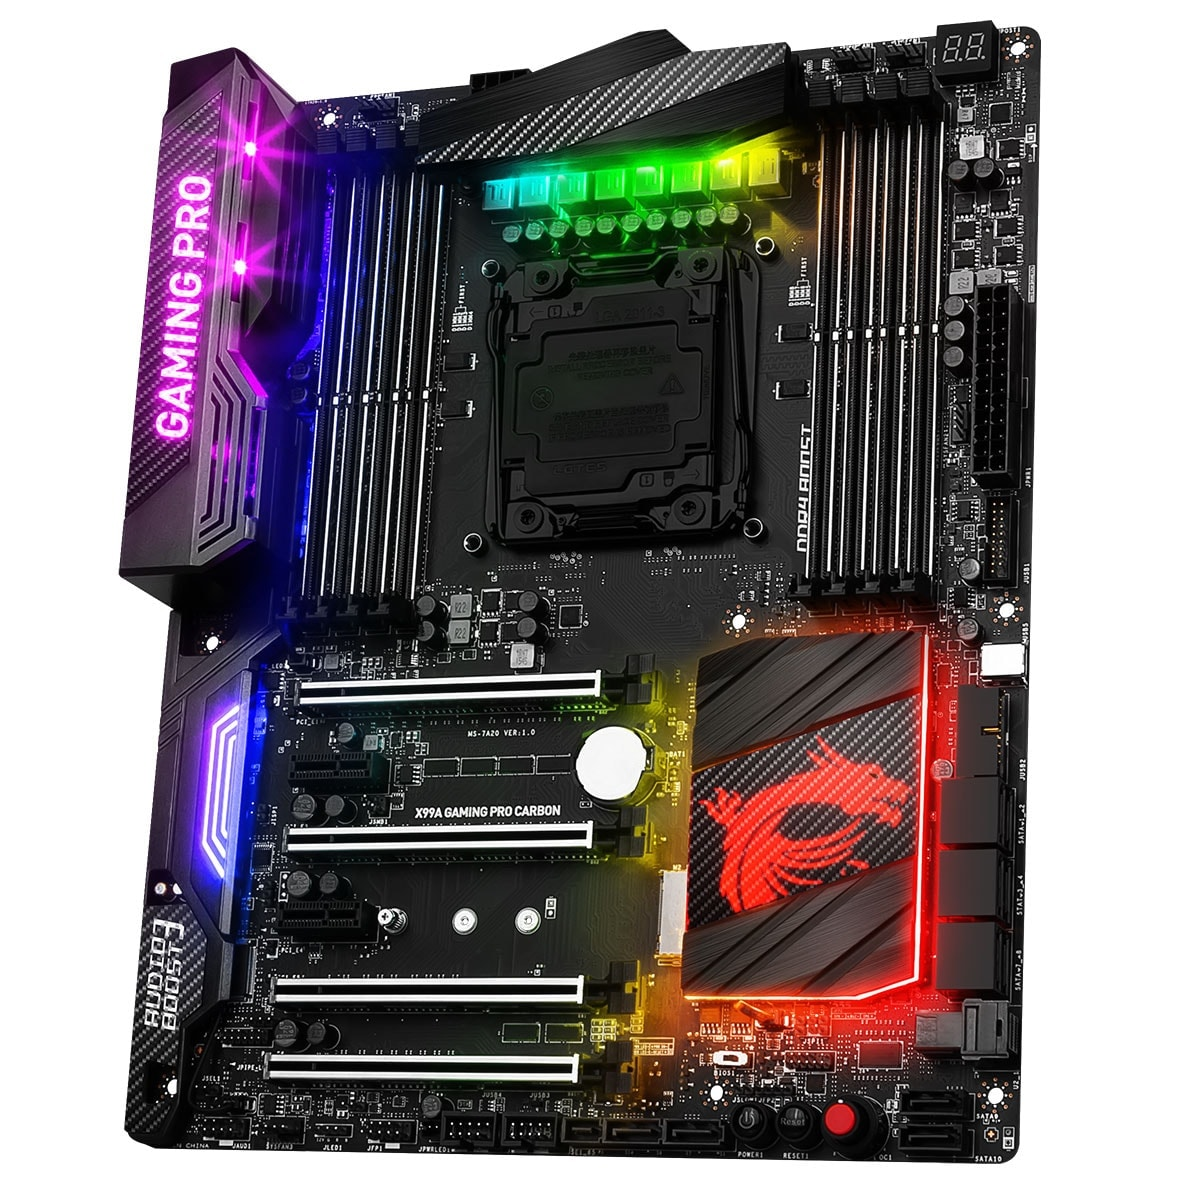 Carte mère MSI X99A GAMING PRO CARBON - 1